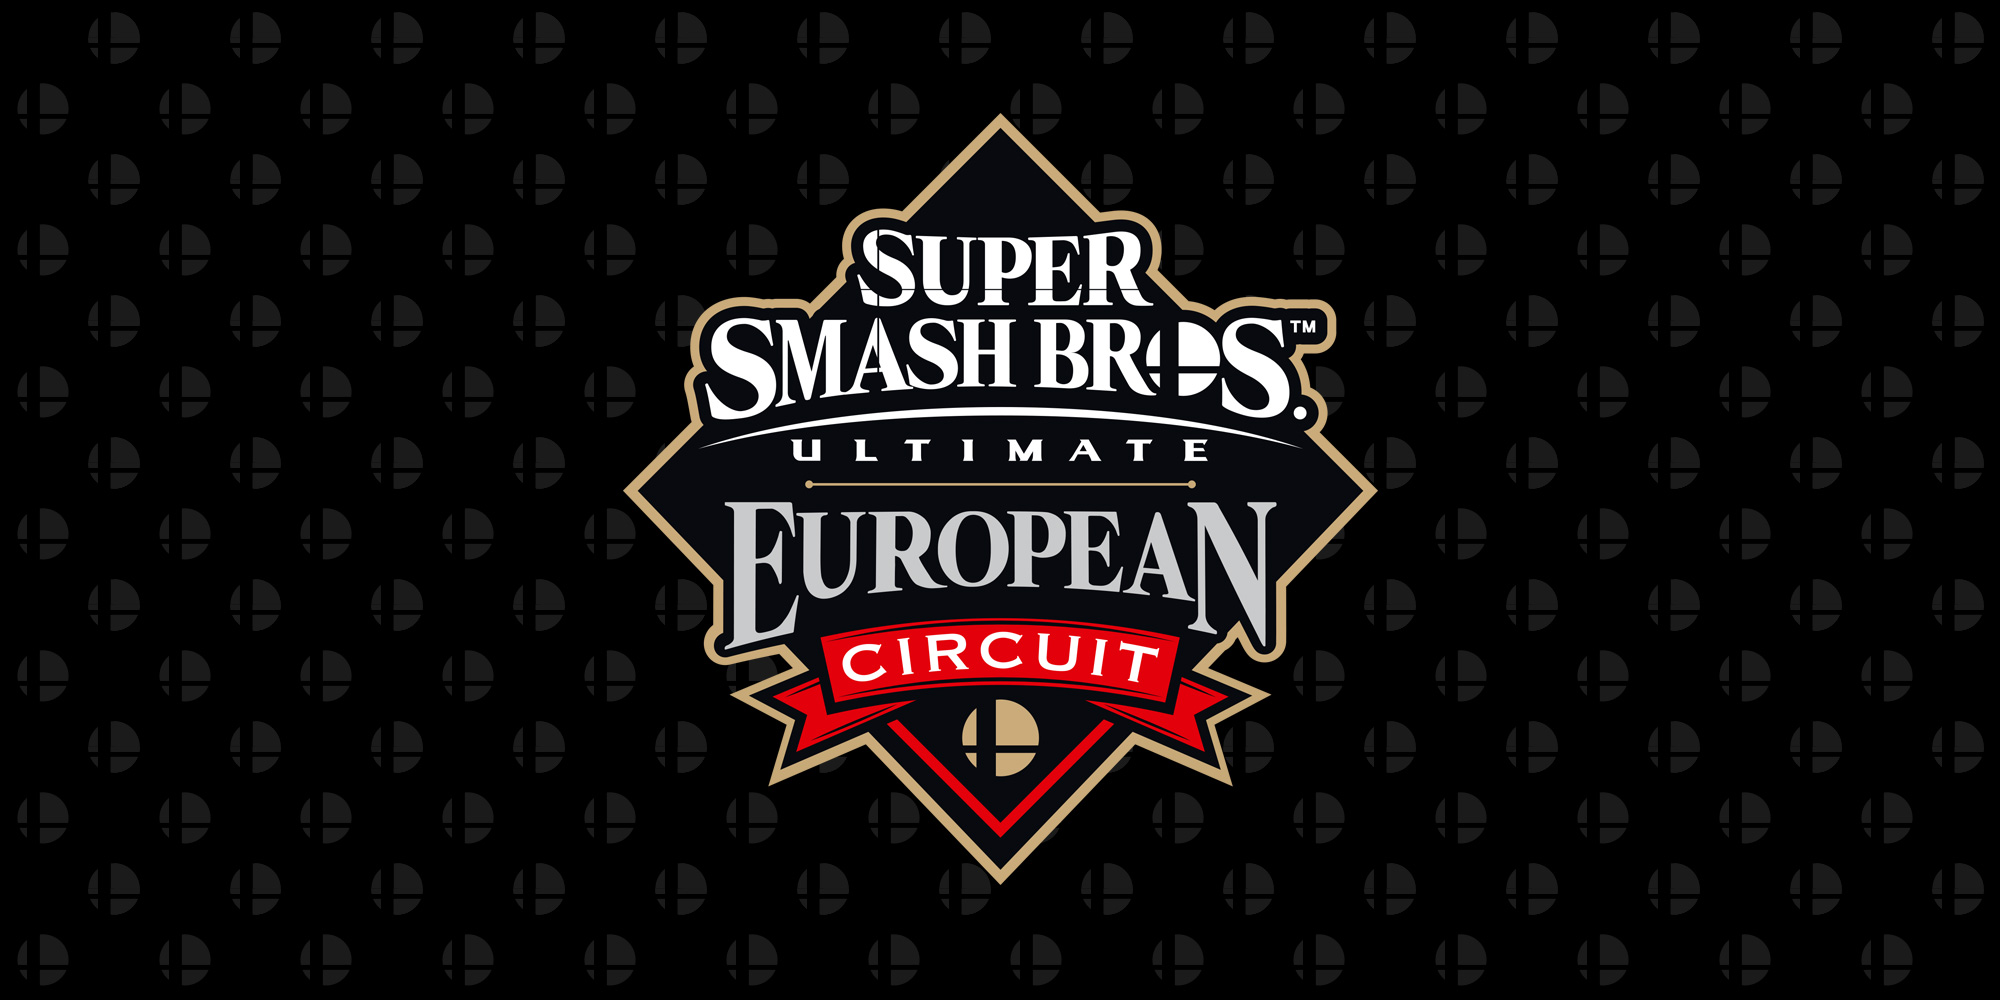 DarkThunder is your DreamHack Leipzig champion – the fourth event of the Super Smash Bros. Ultimate European Circuit!